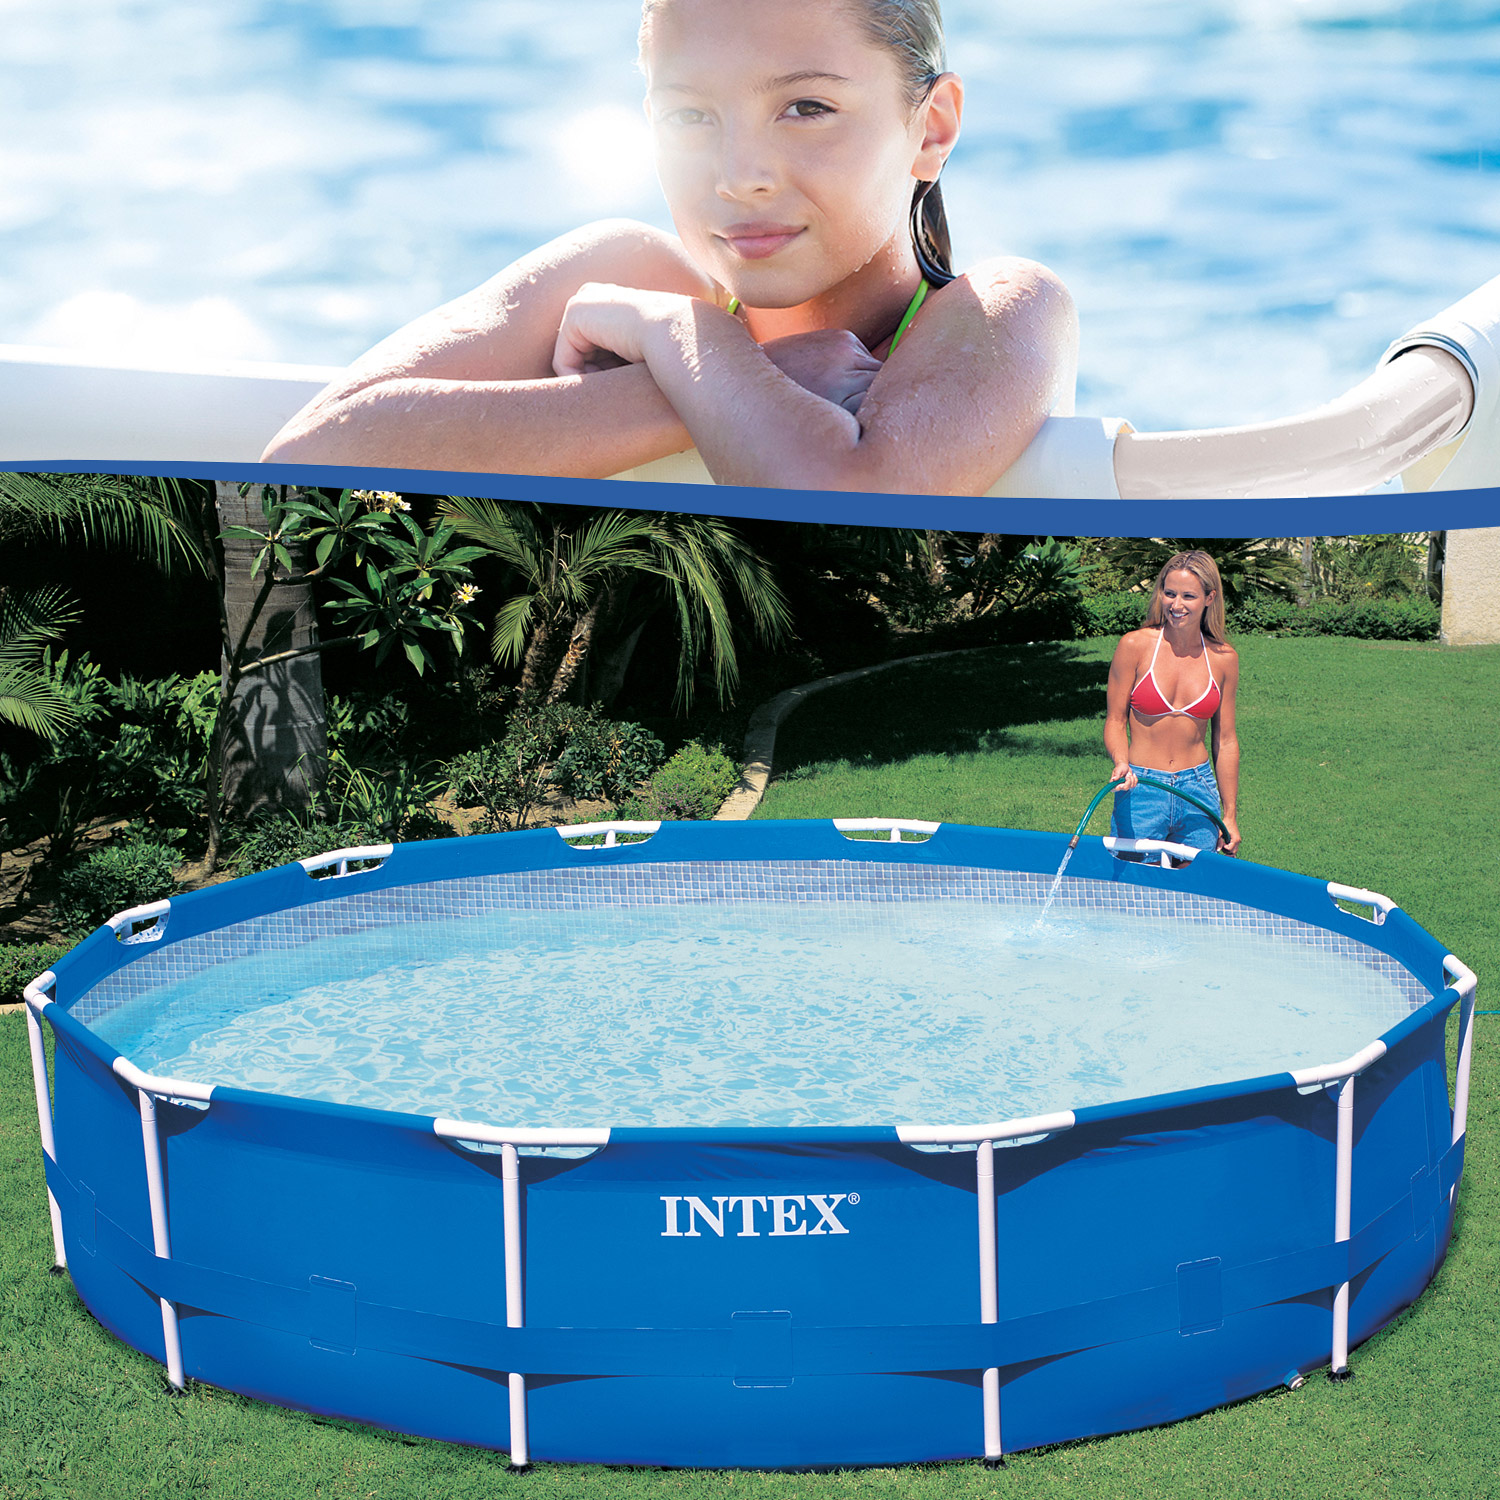 intex 305x76 cm metall frame pool set rondo. Black Bedroom Furniture Sets. Home Design Ideas